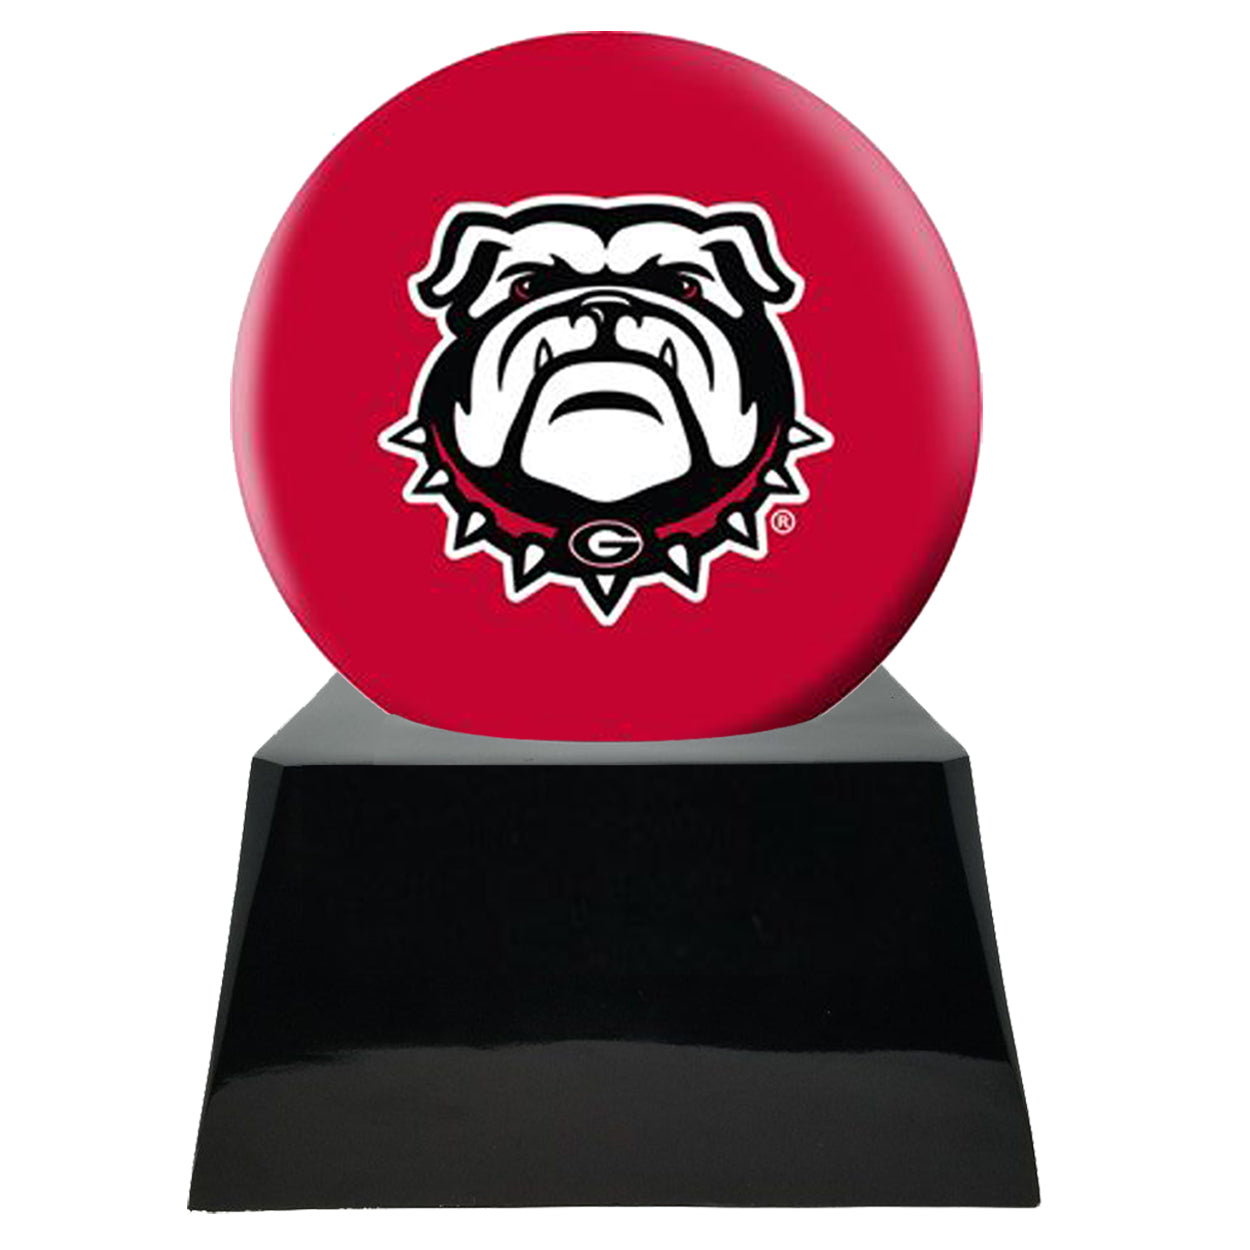 Football Cremation Urns For Human Ashes - Football Team Cremation Urn and Georgia Bulldogs Ball Decor with Custom Metal Plaque - Memorials4u data-image-id=